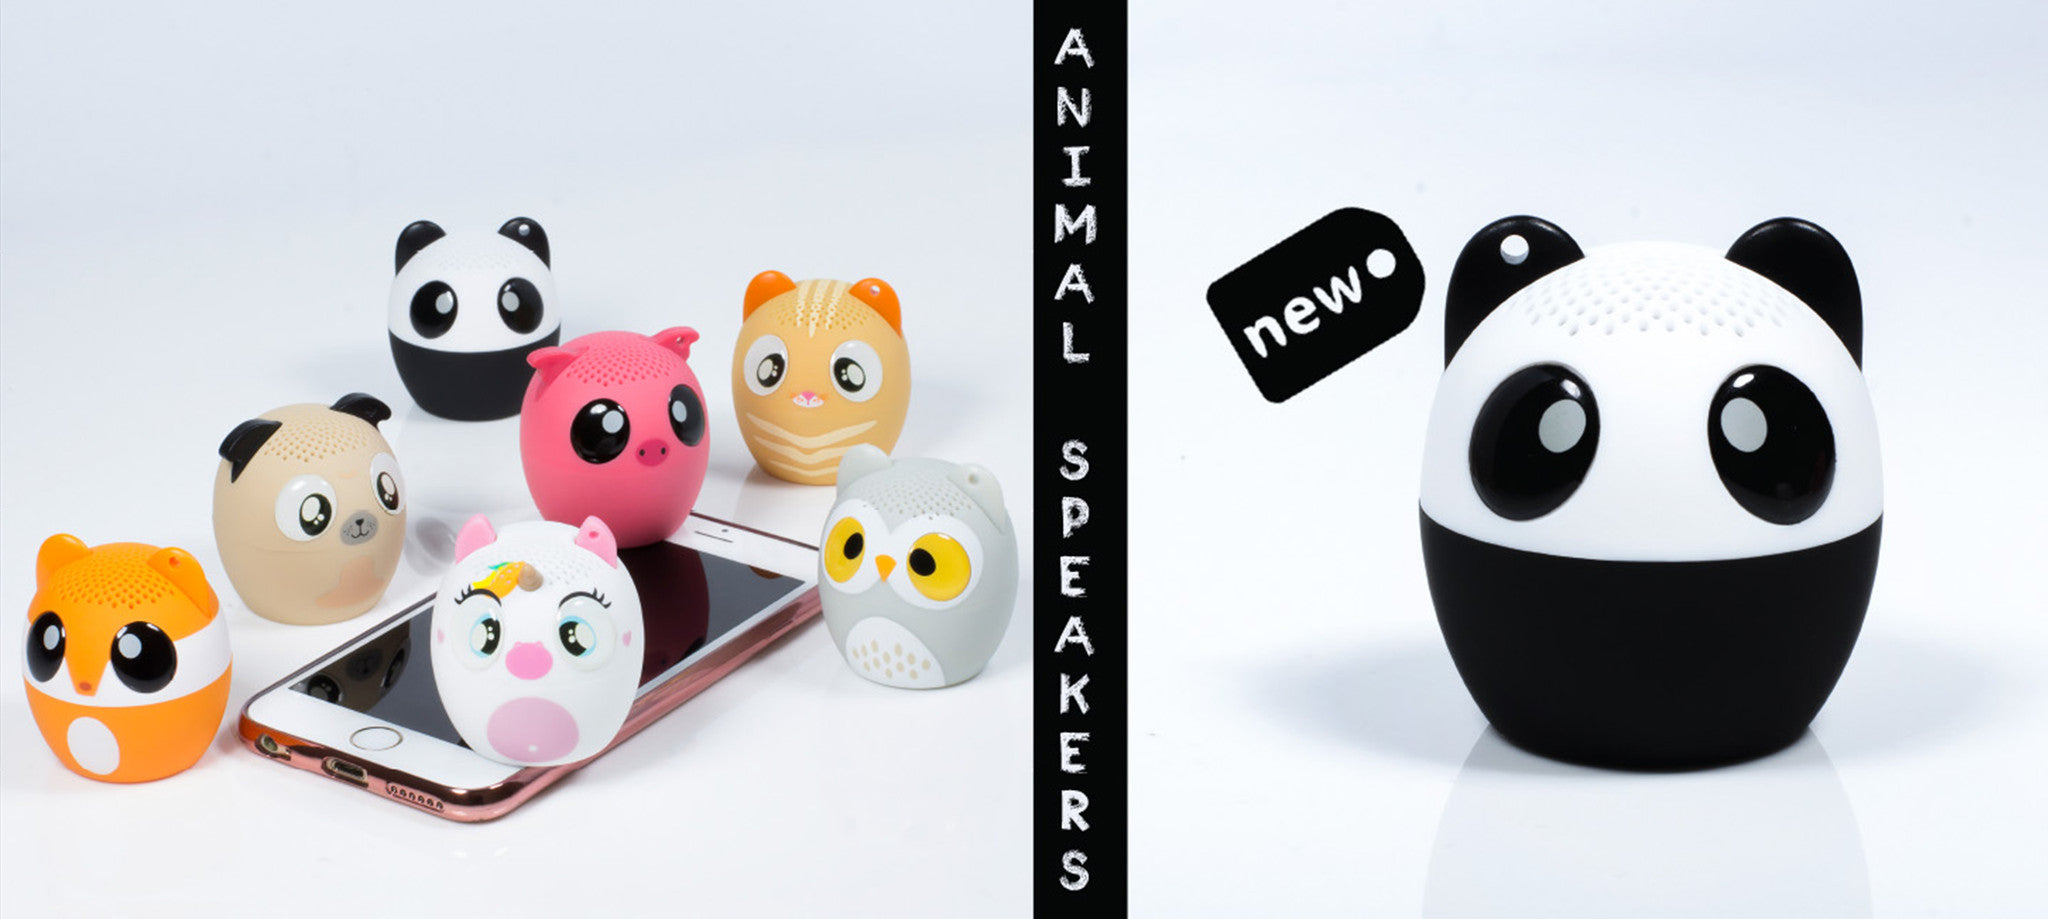 Animal Speakers Bluetooth Portable 5060407525679